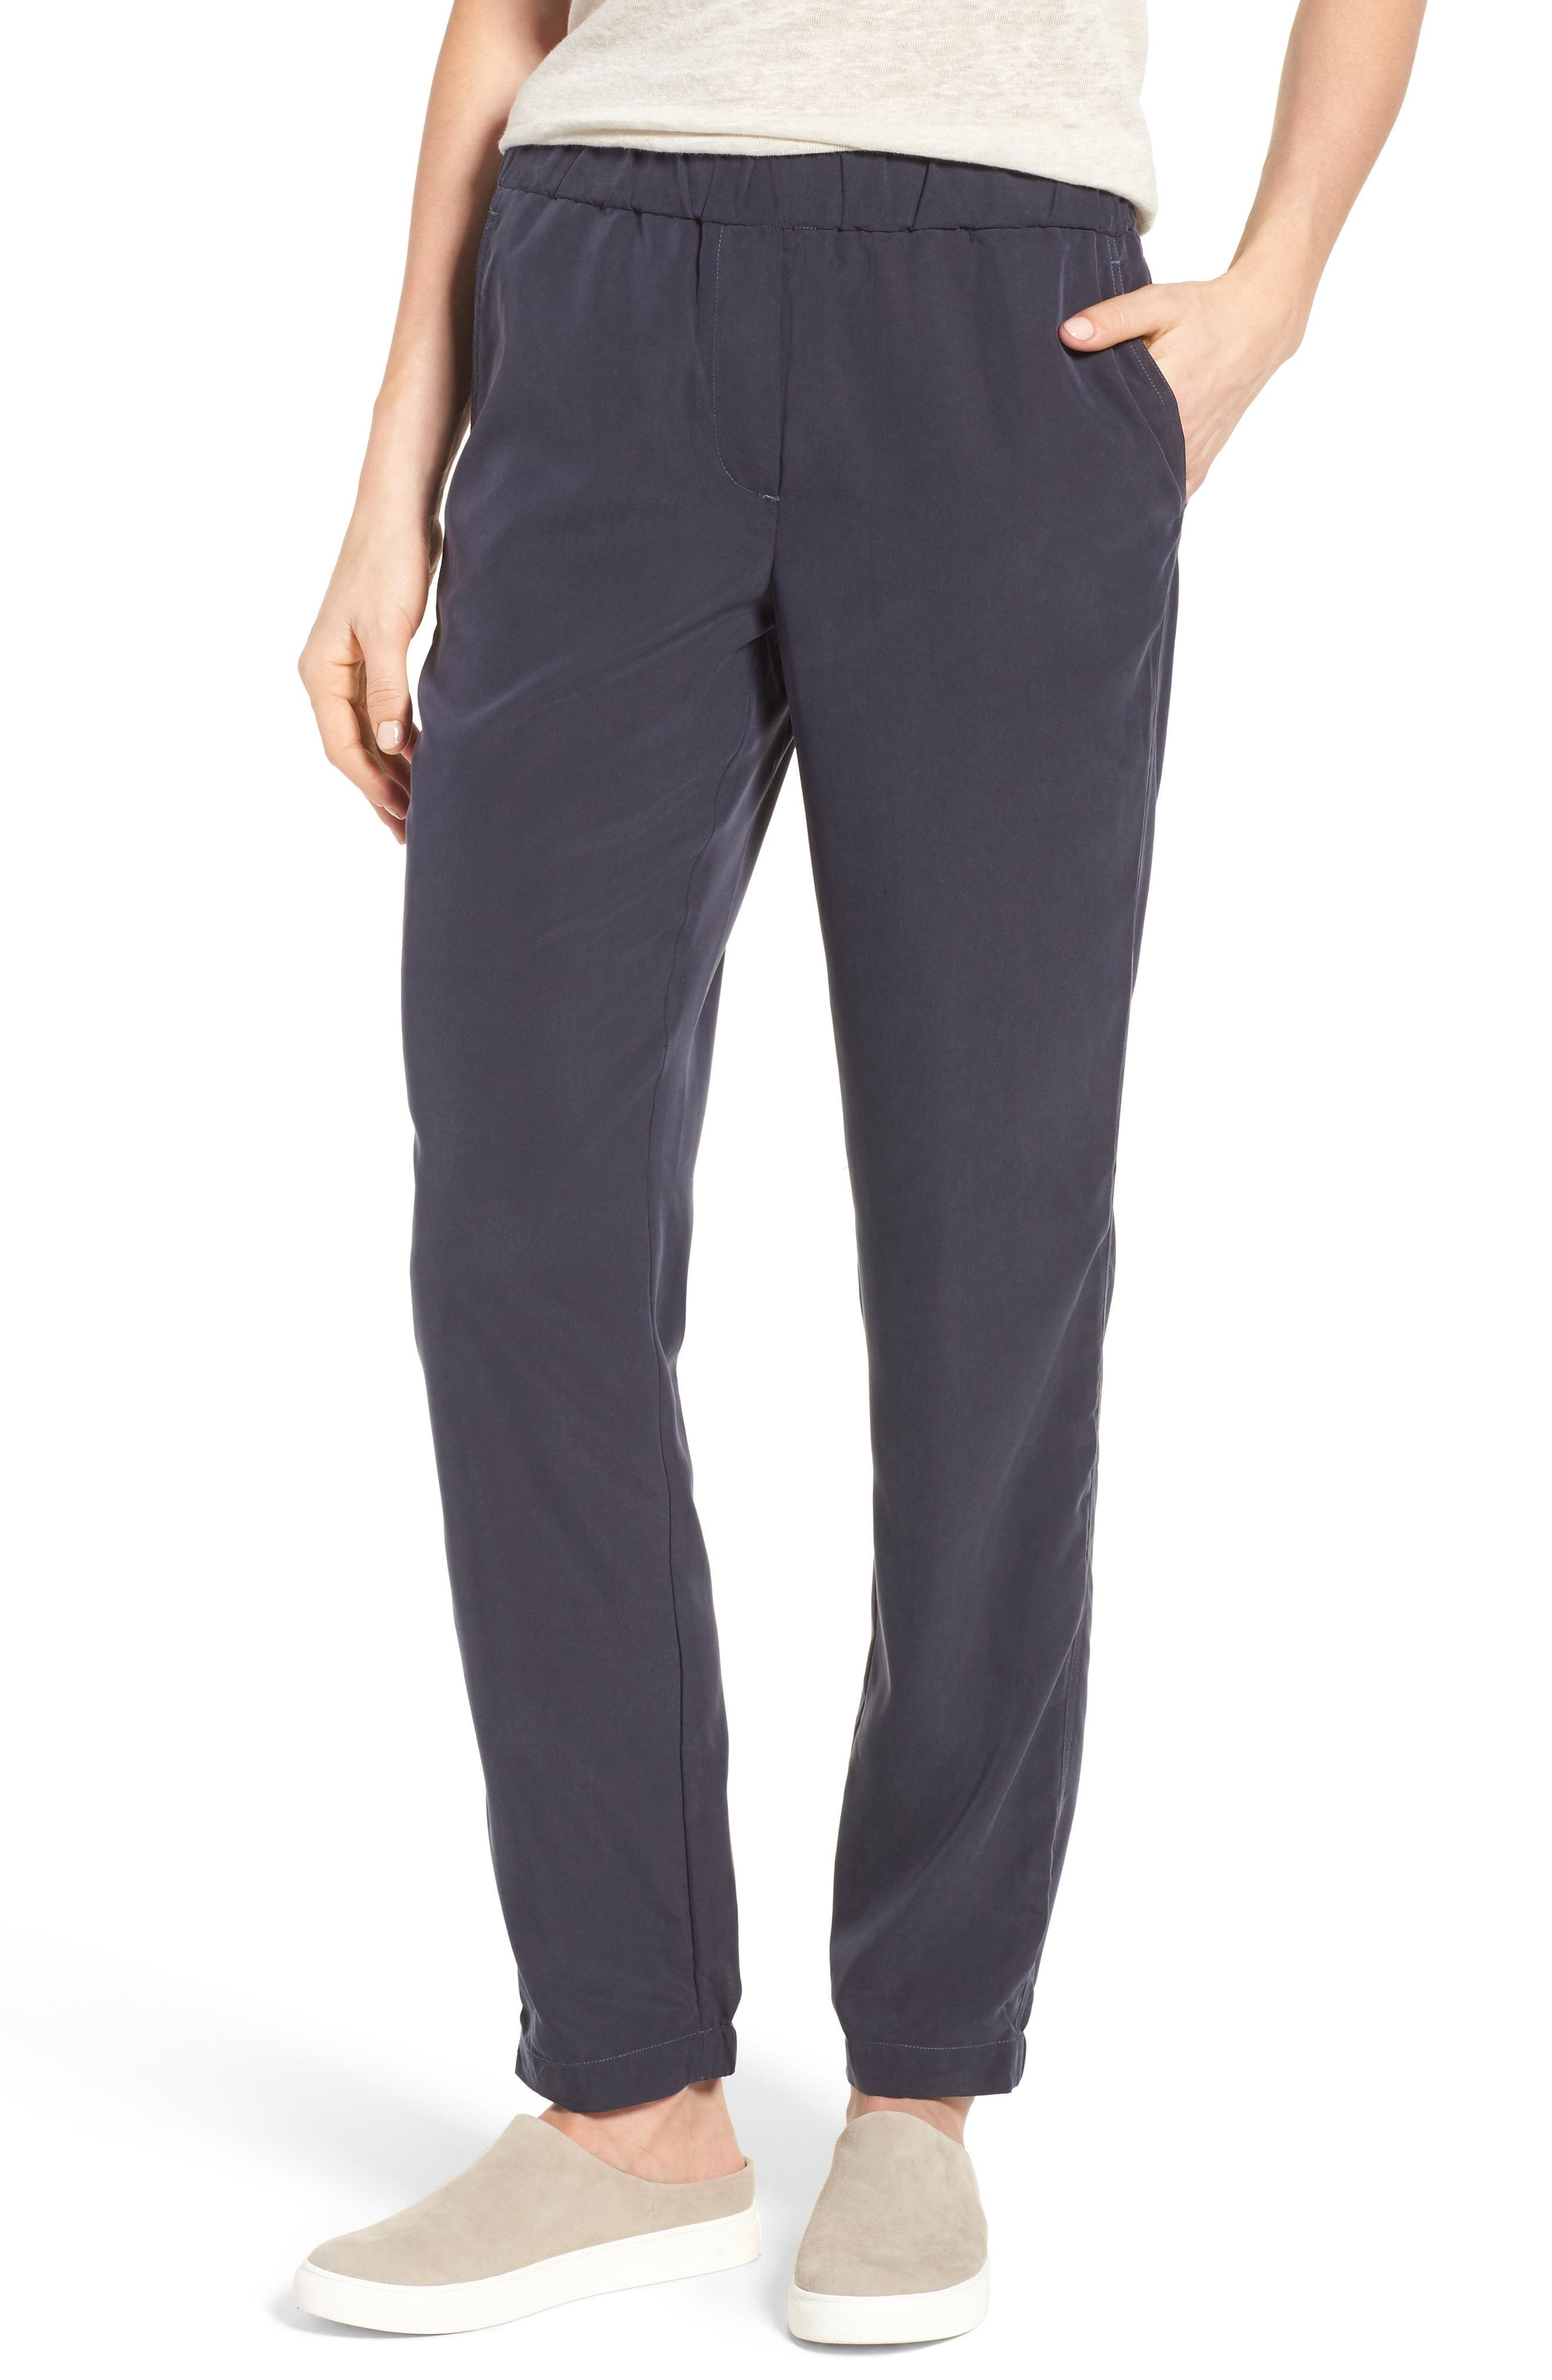 City Slicker Pants,                         Main,                         color, Washed Midnight